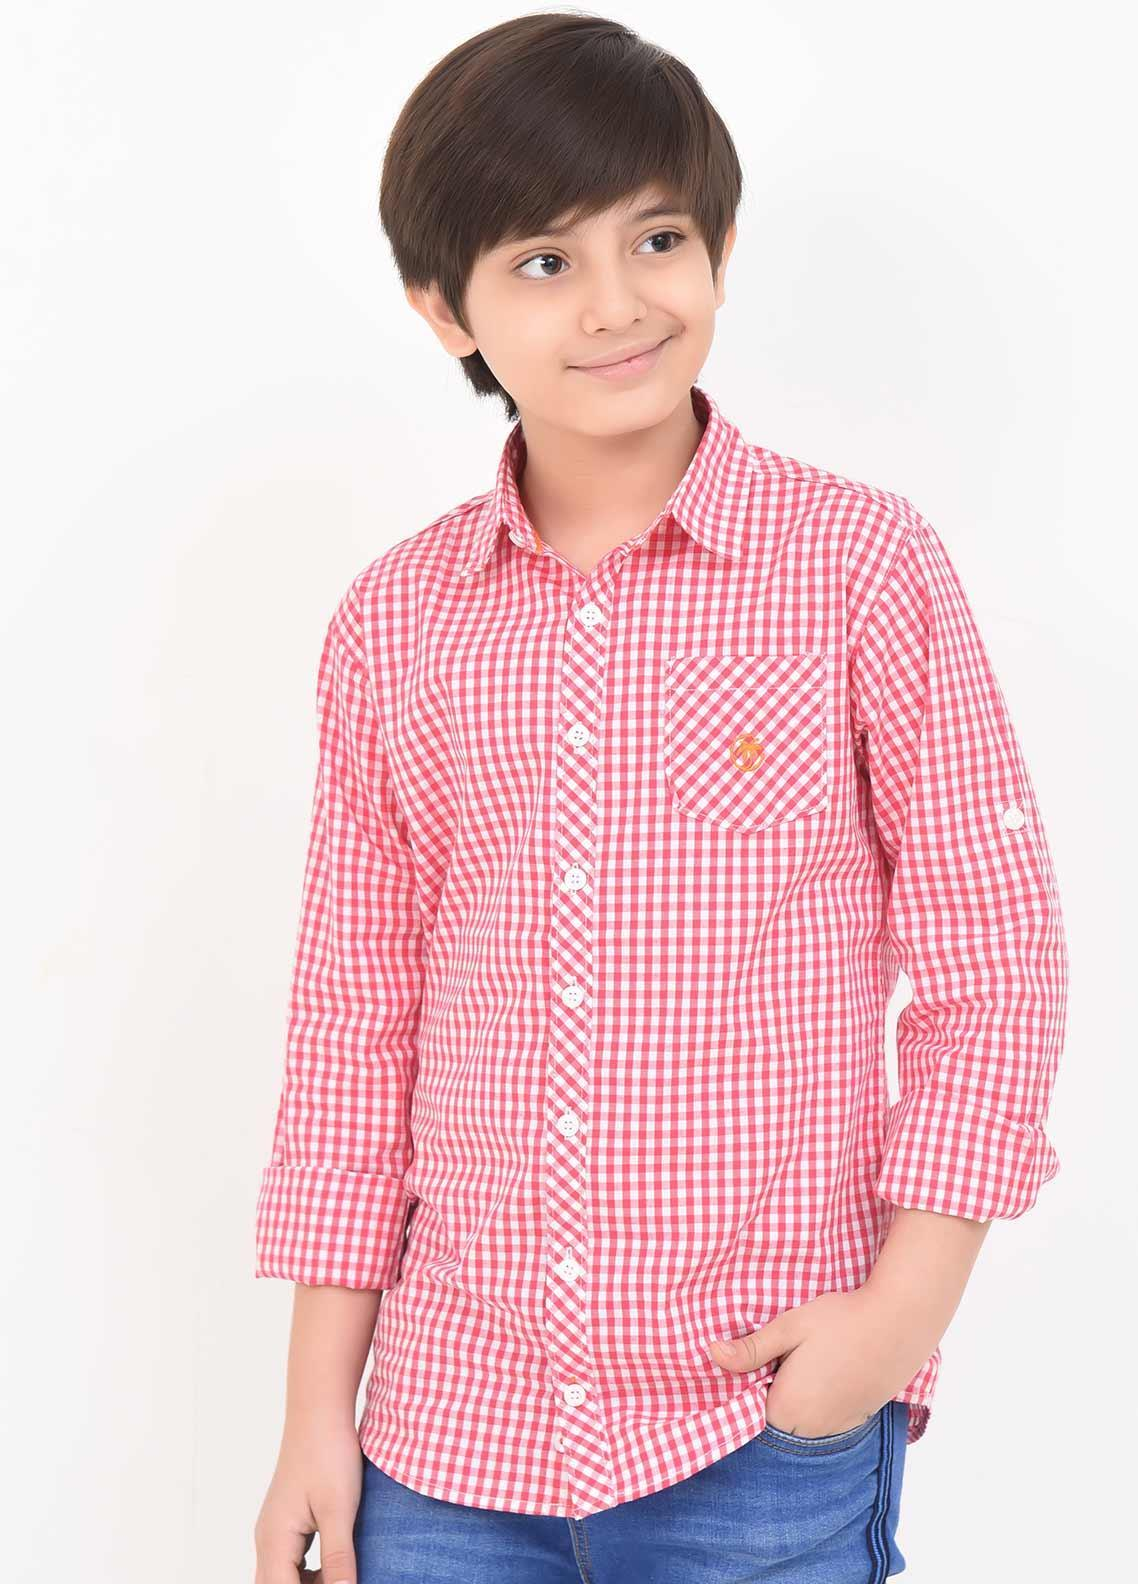 Ochre Cotton Casual Shirts for Boys -  OBS 14 Red